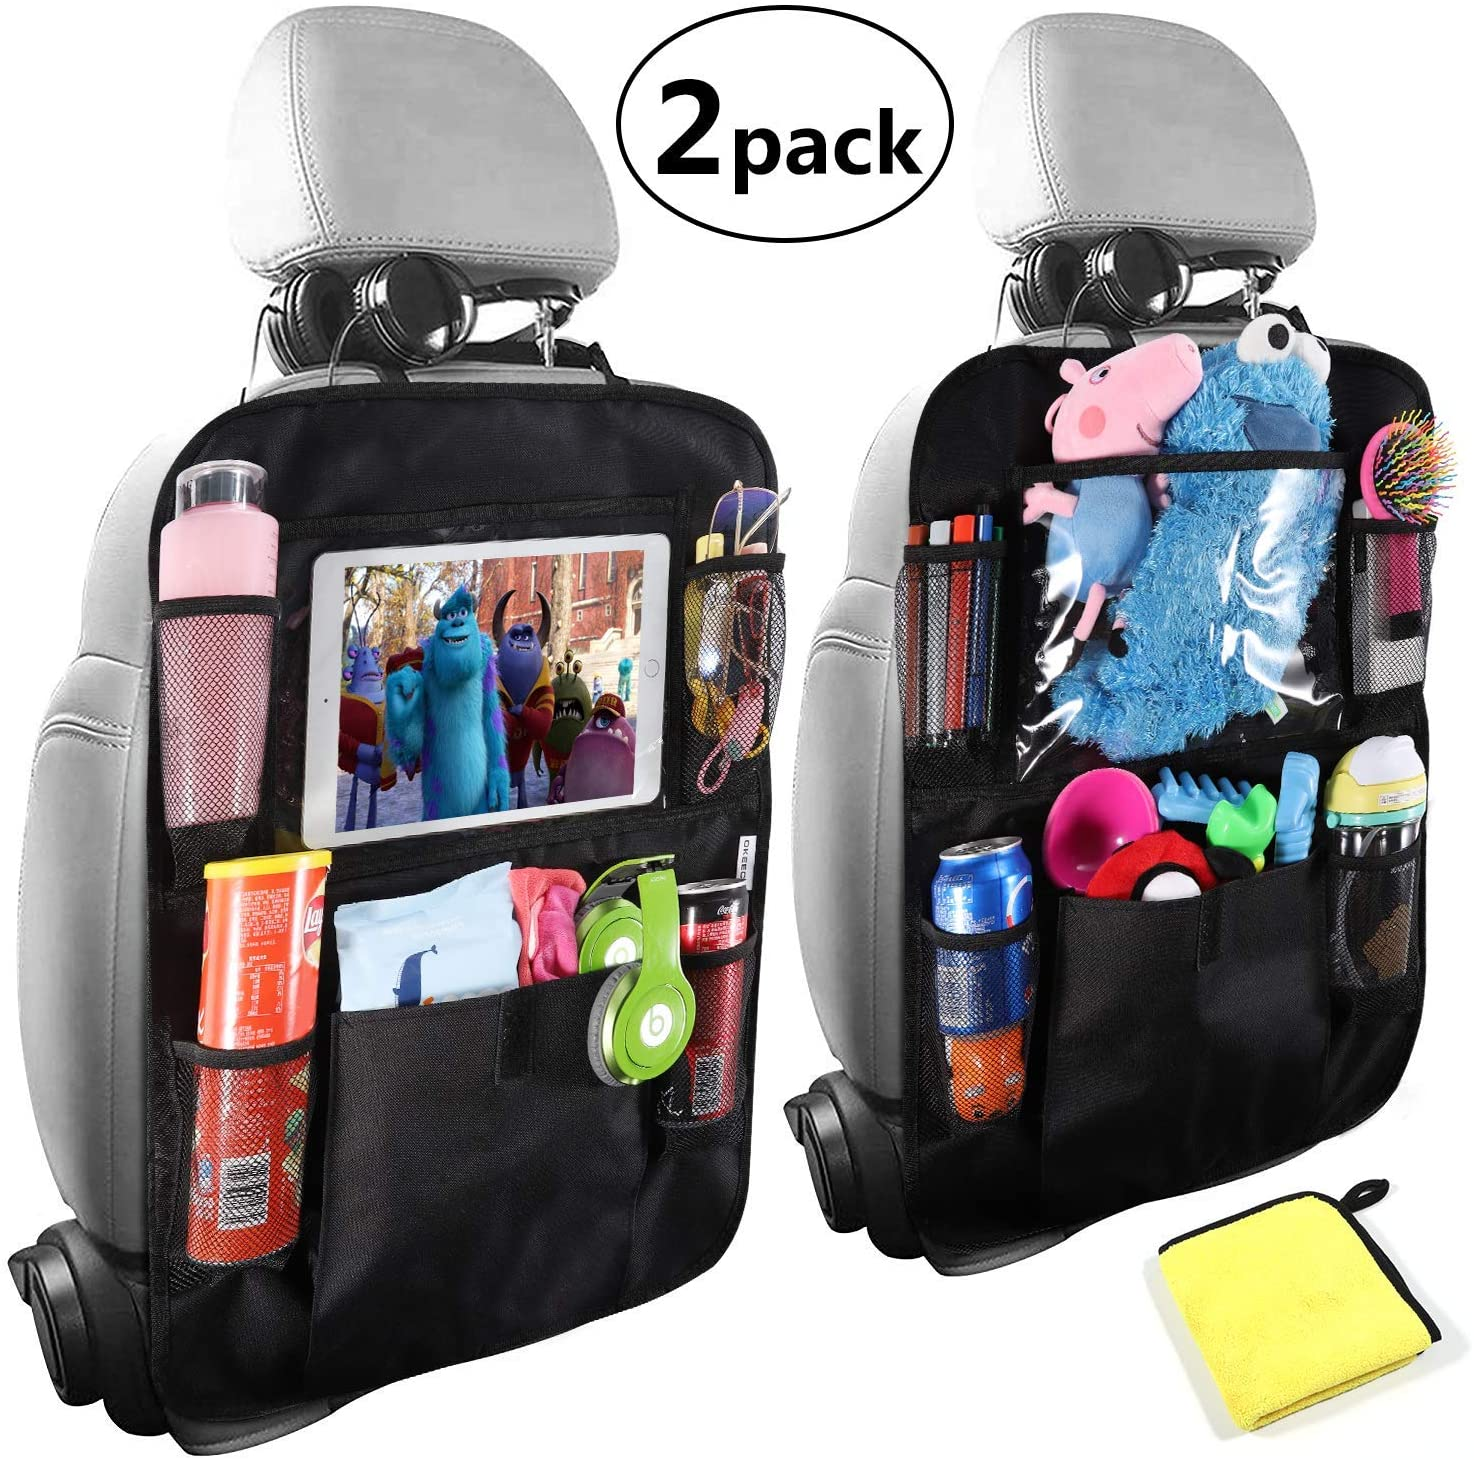 Car Backseat Organizers For Kids, Kick Mat with 10inch Tablet Holder, Car Seat Back Protectors,Multiple Storage Pockets for Toys Drink Tissue Snacks,Car Accessories for Kids&Toddlers(2Pack+1Bonus)